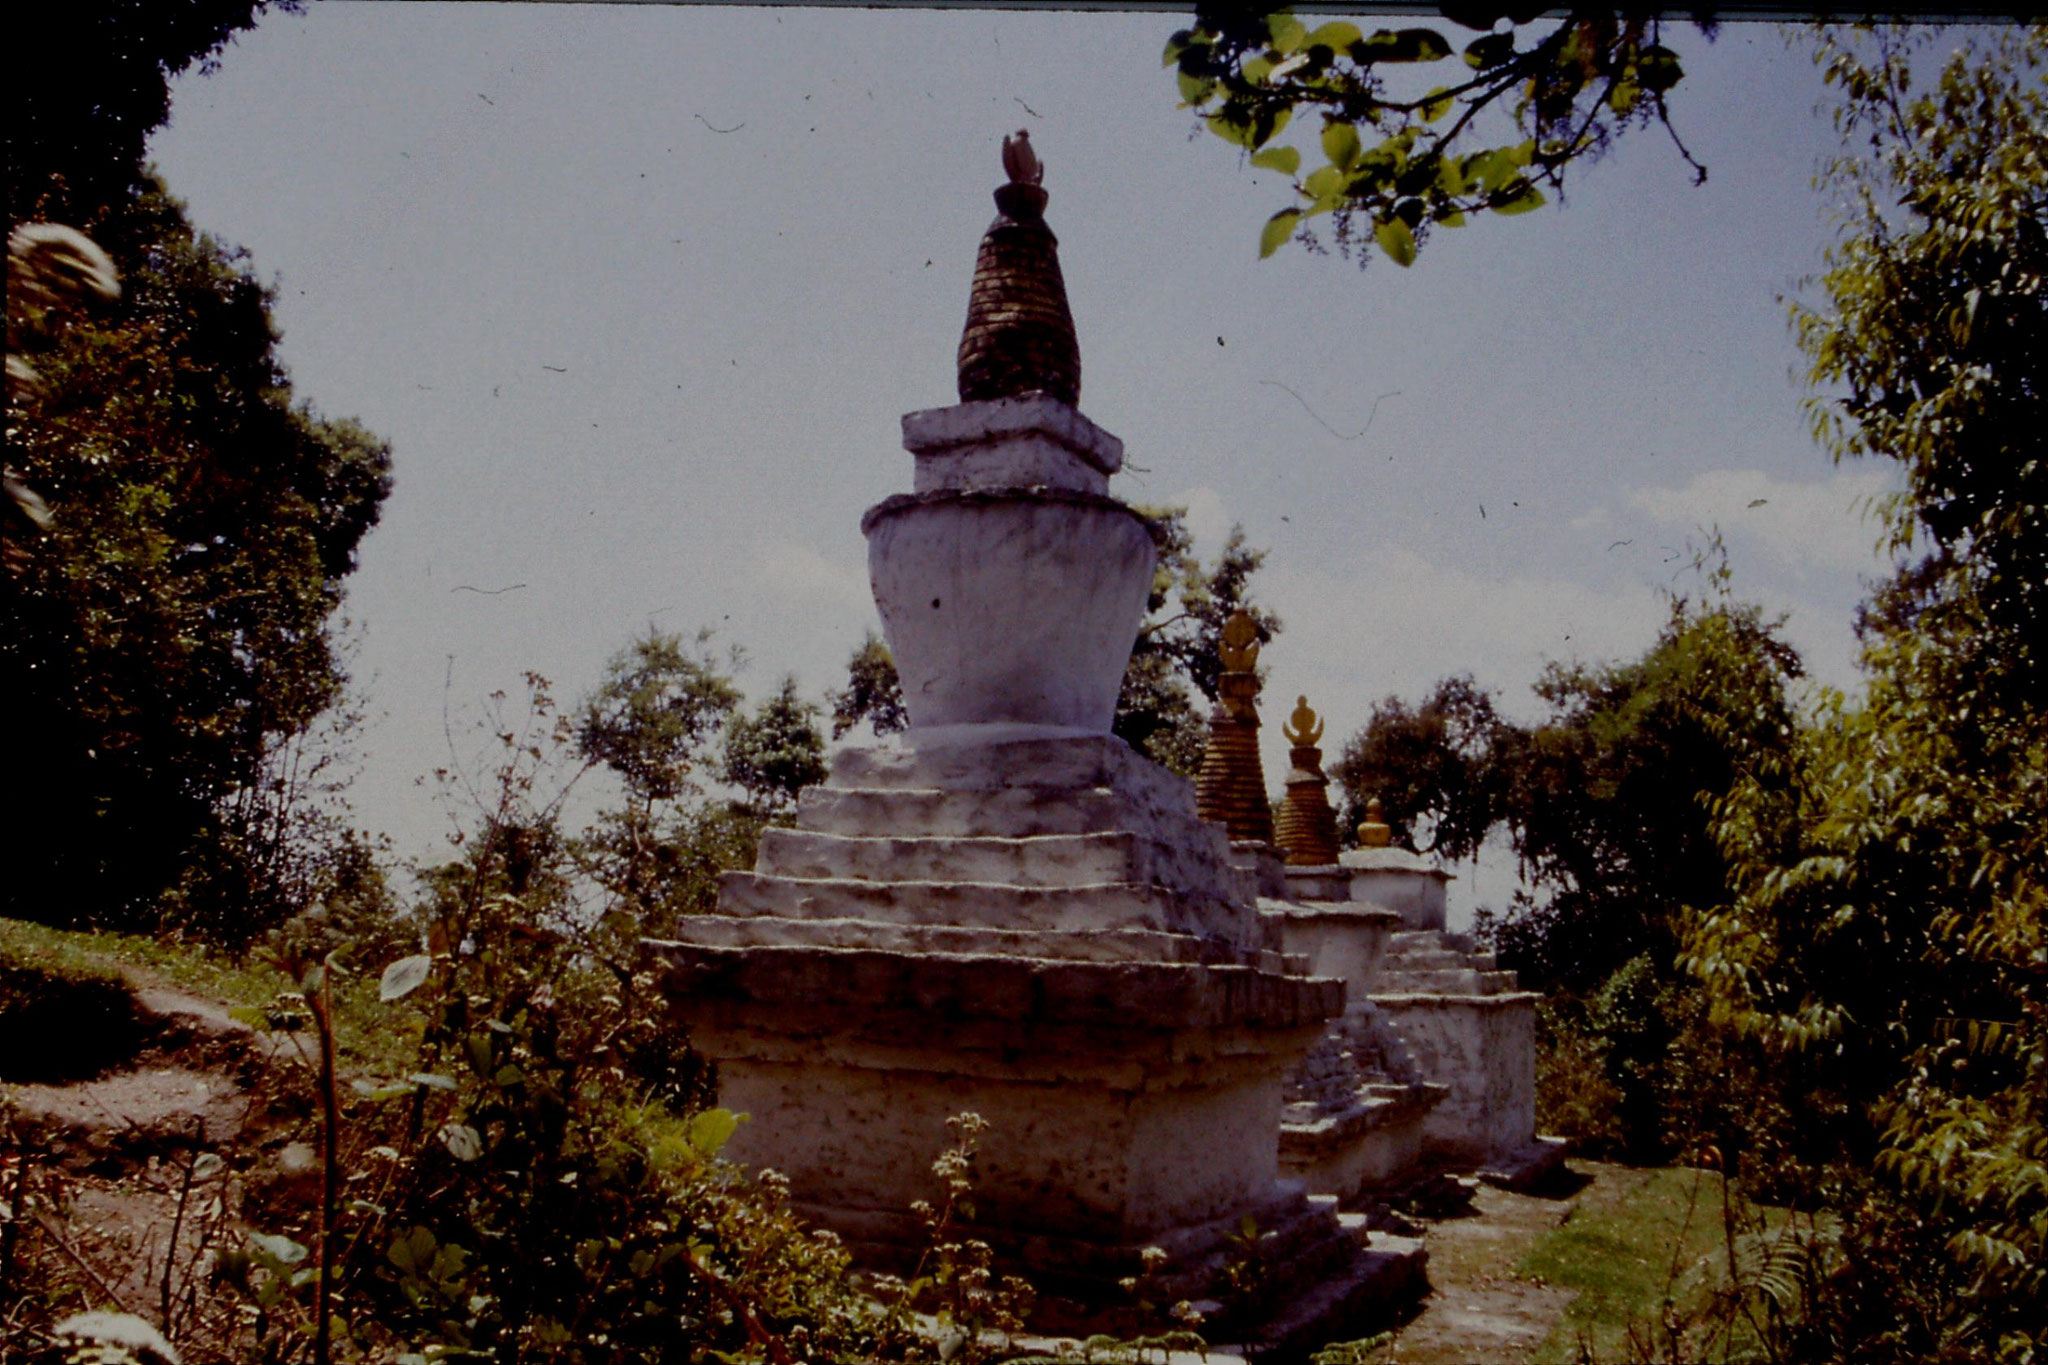 115/30: 28/4/1990 Pelling - row of stupas